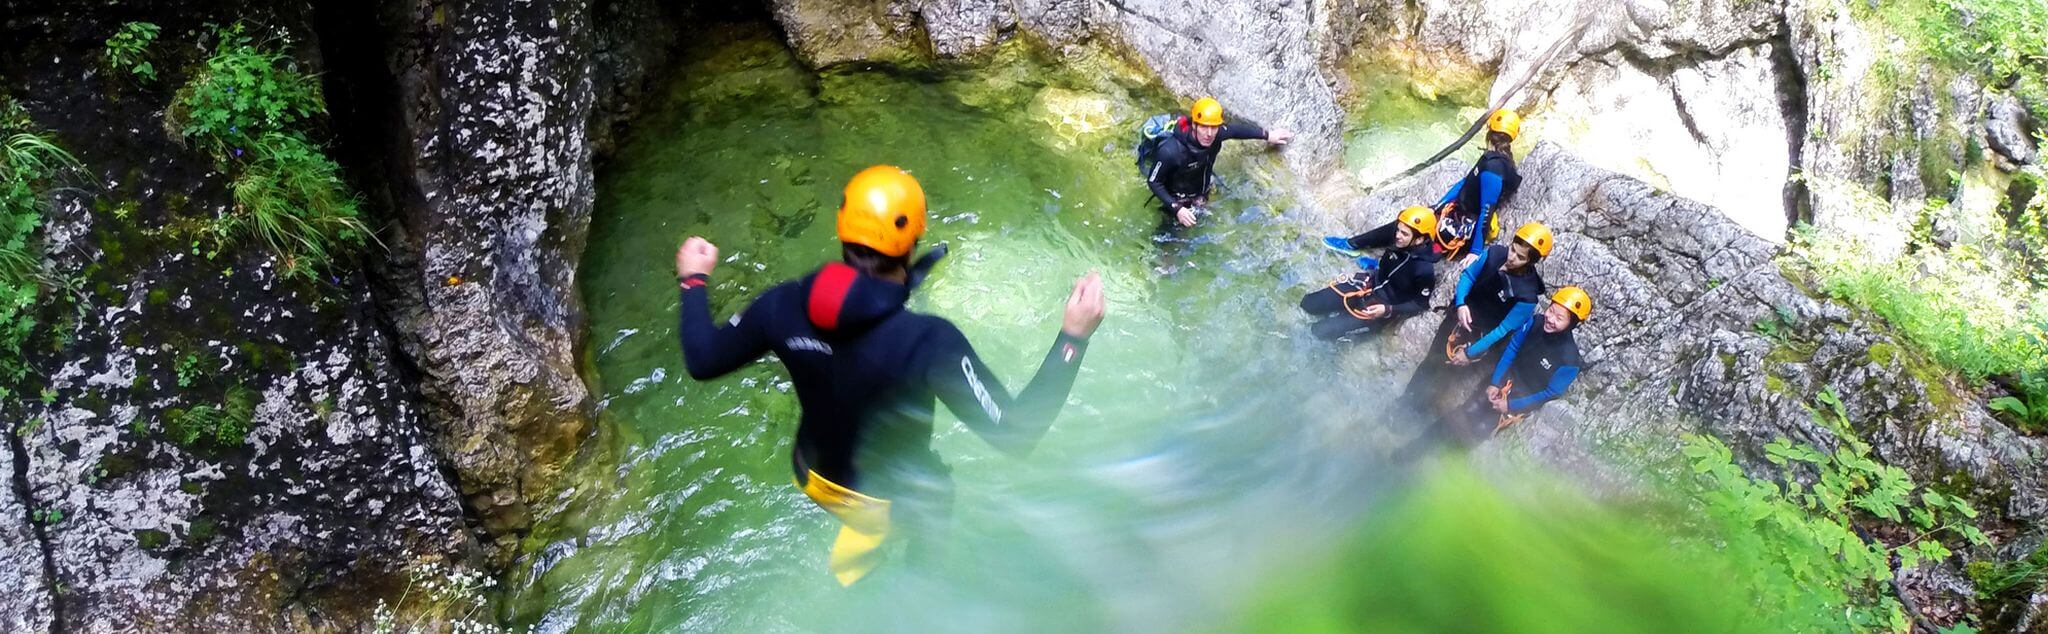 Canyoning in Torrelavega